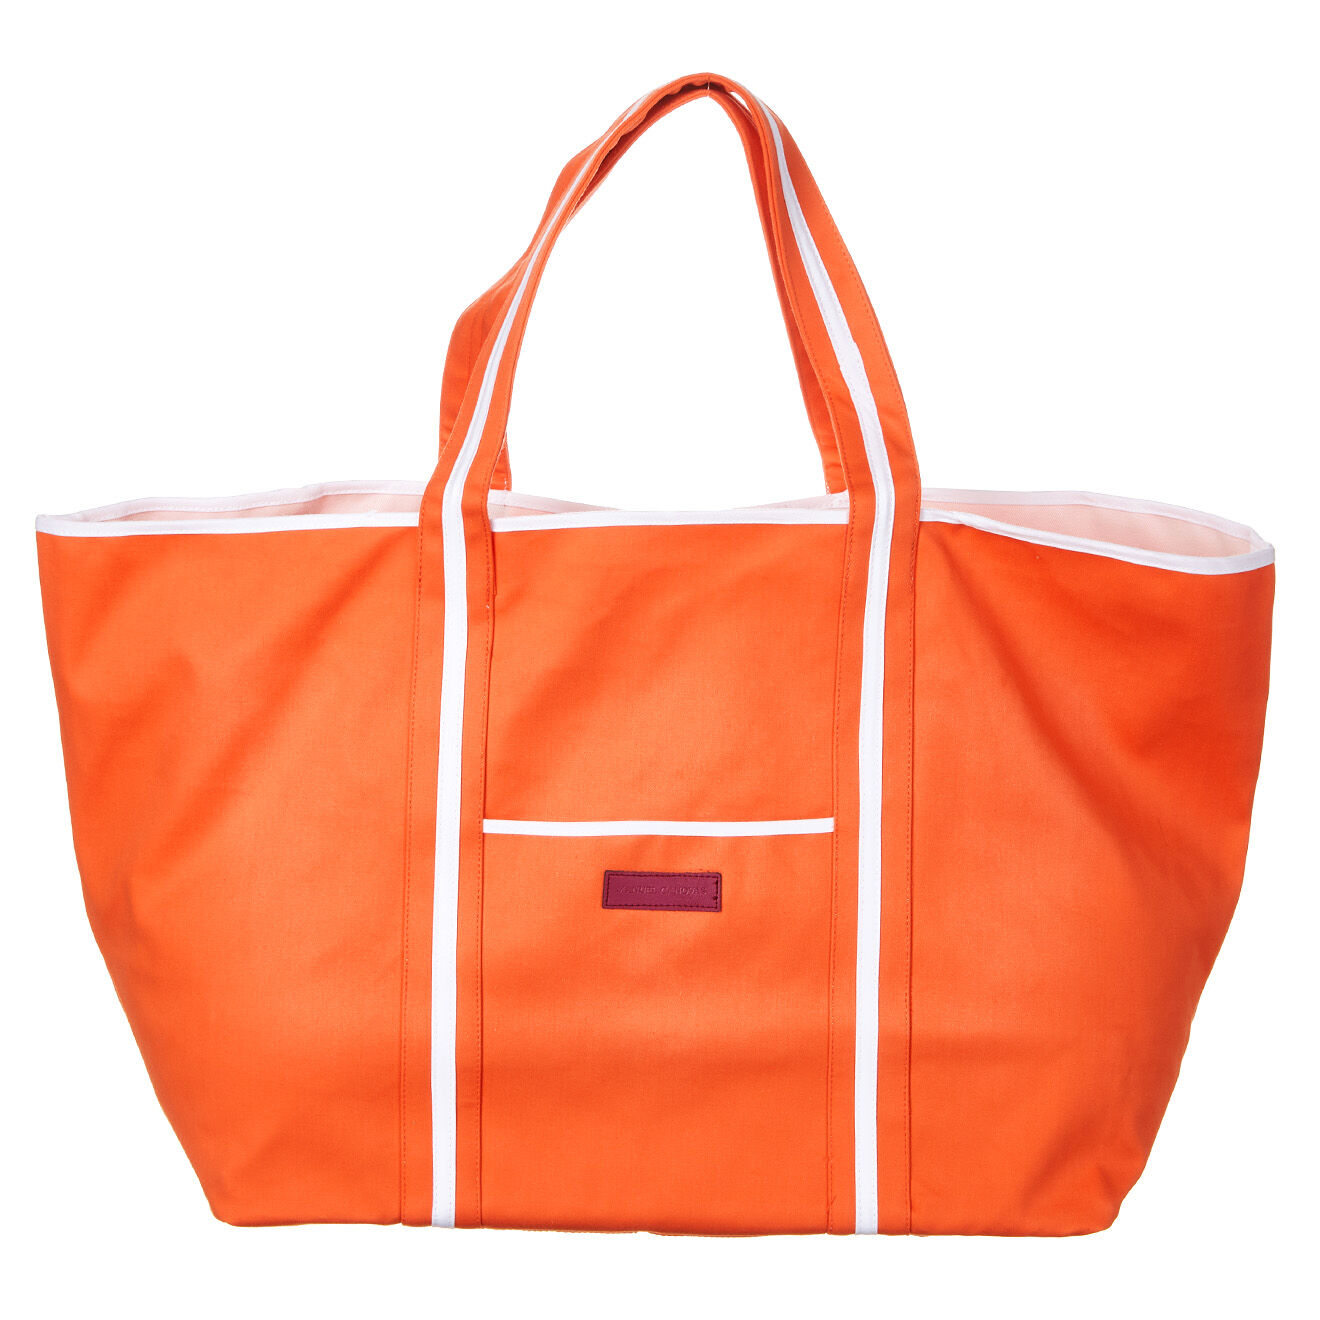 Sac Effy uni orange - 54x31x18 cm